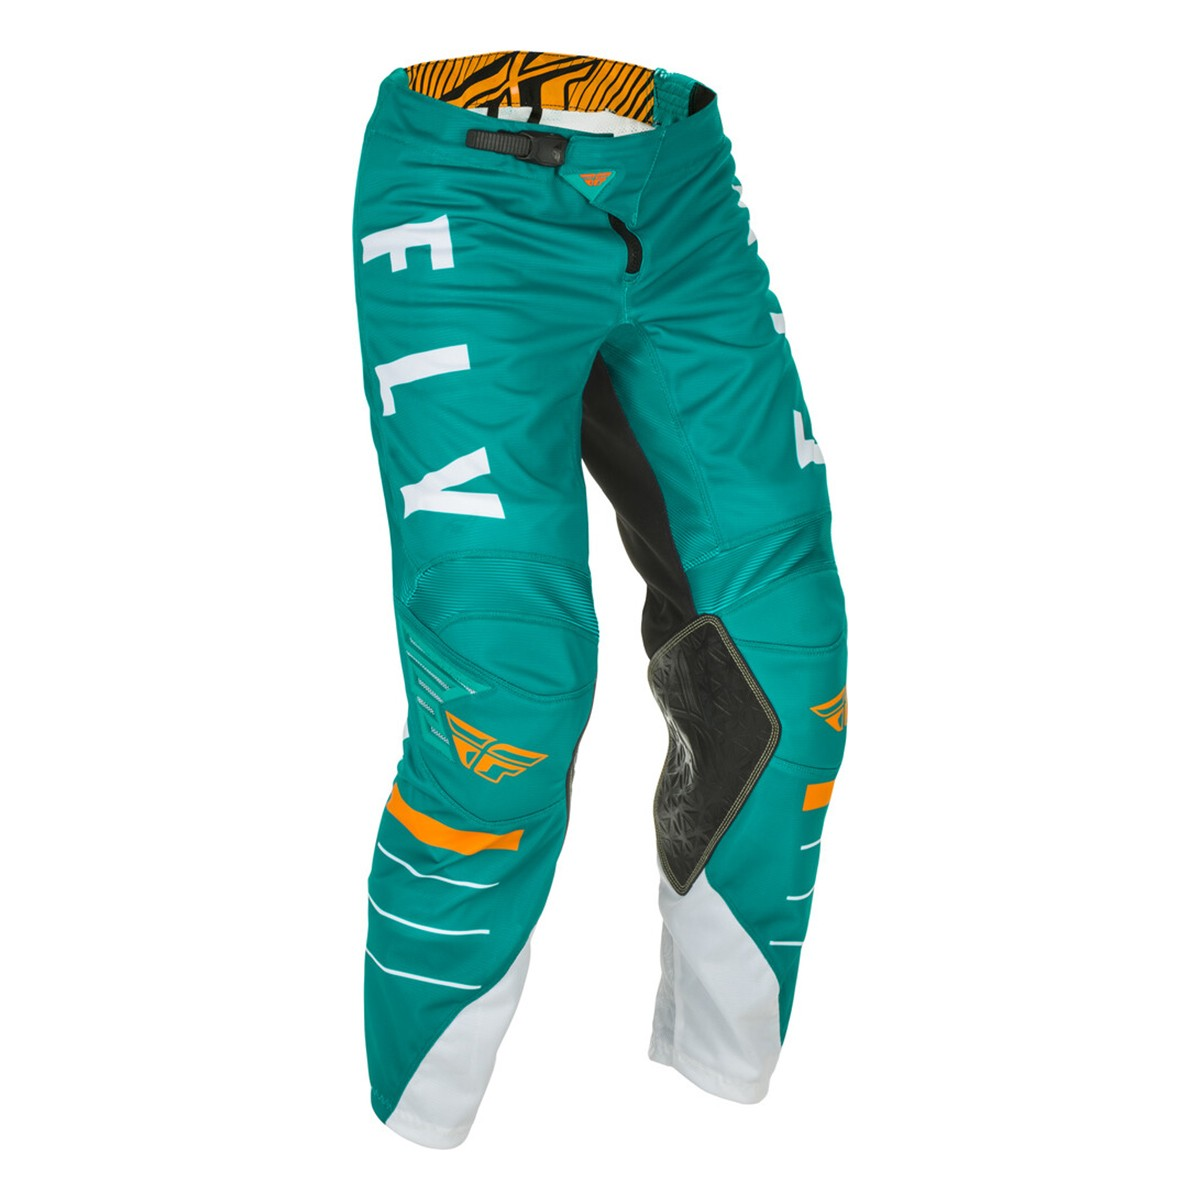 FLY YOUTH KINETIC MESH 2021 PANTS